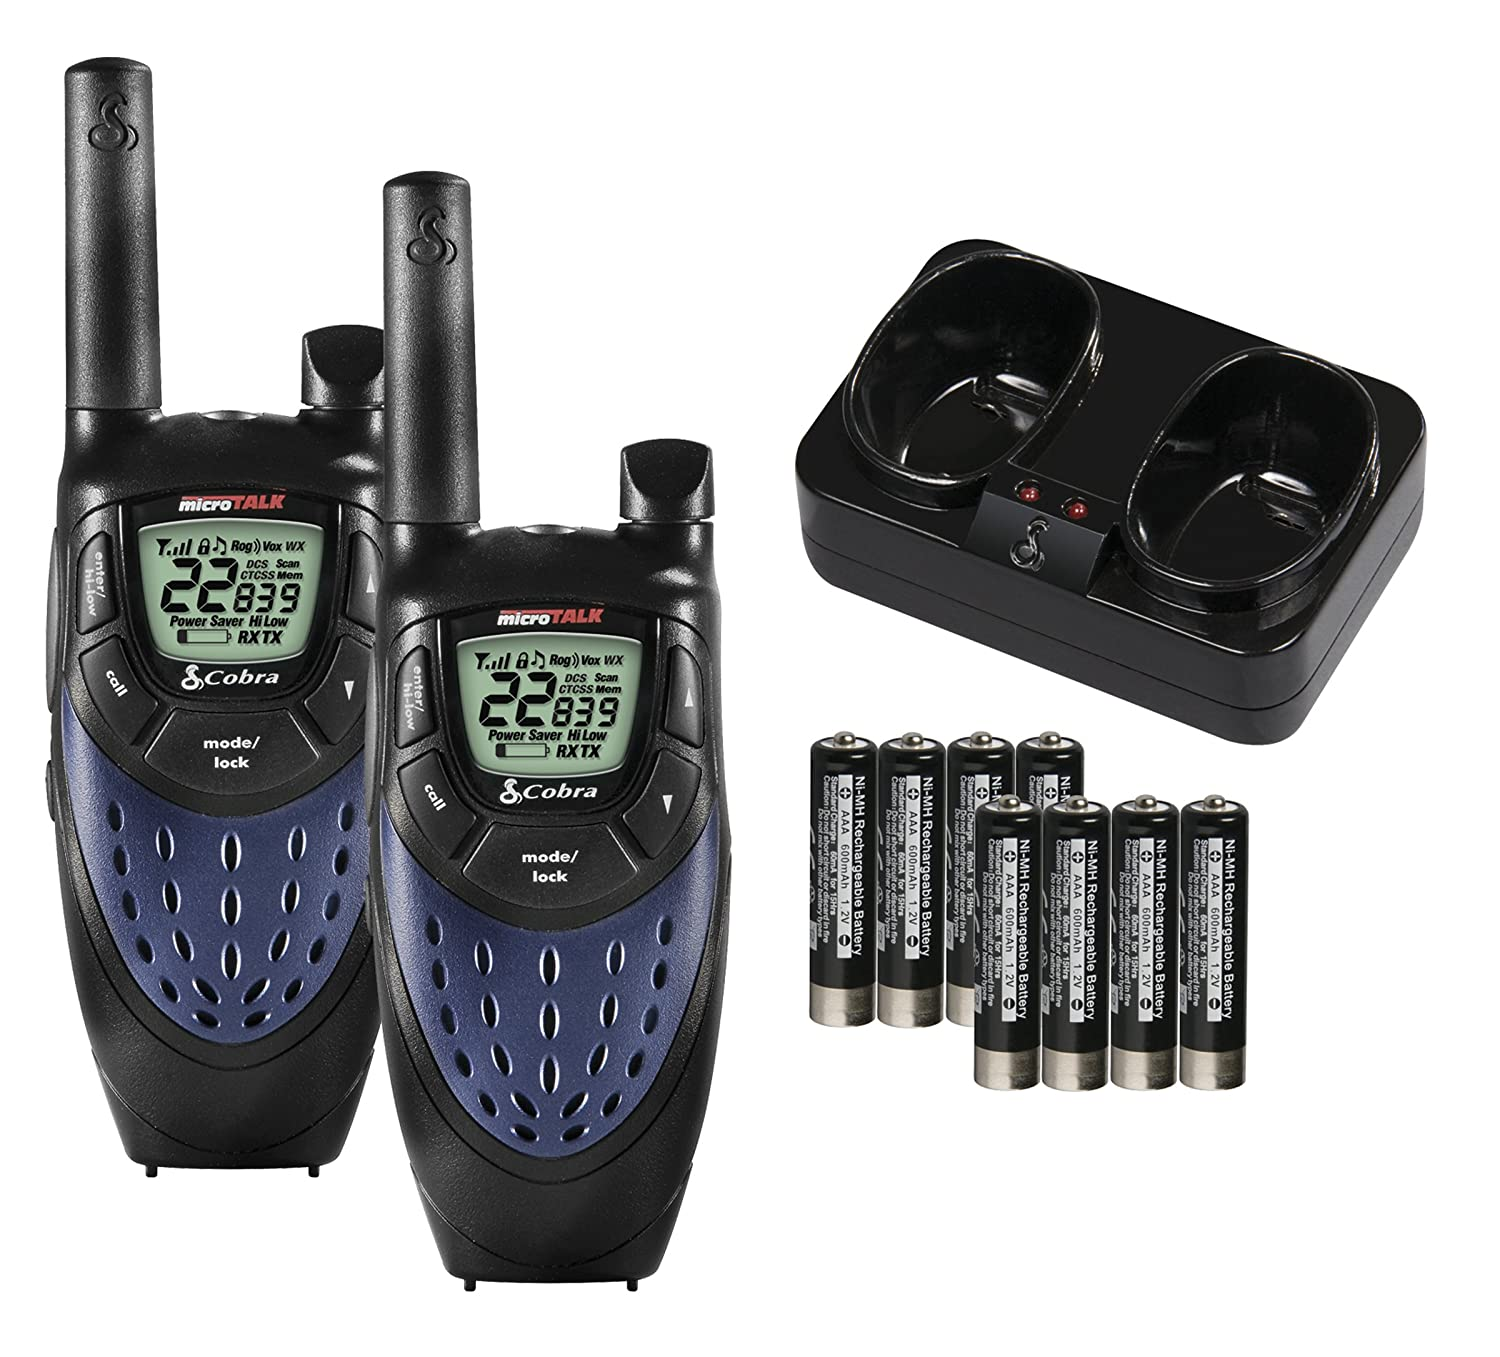 Amazon.com: Cobra Walkie-Talkies Two way communication for helping back into spots, or even communicate on a hike are pretty essential RVing gear!